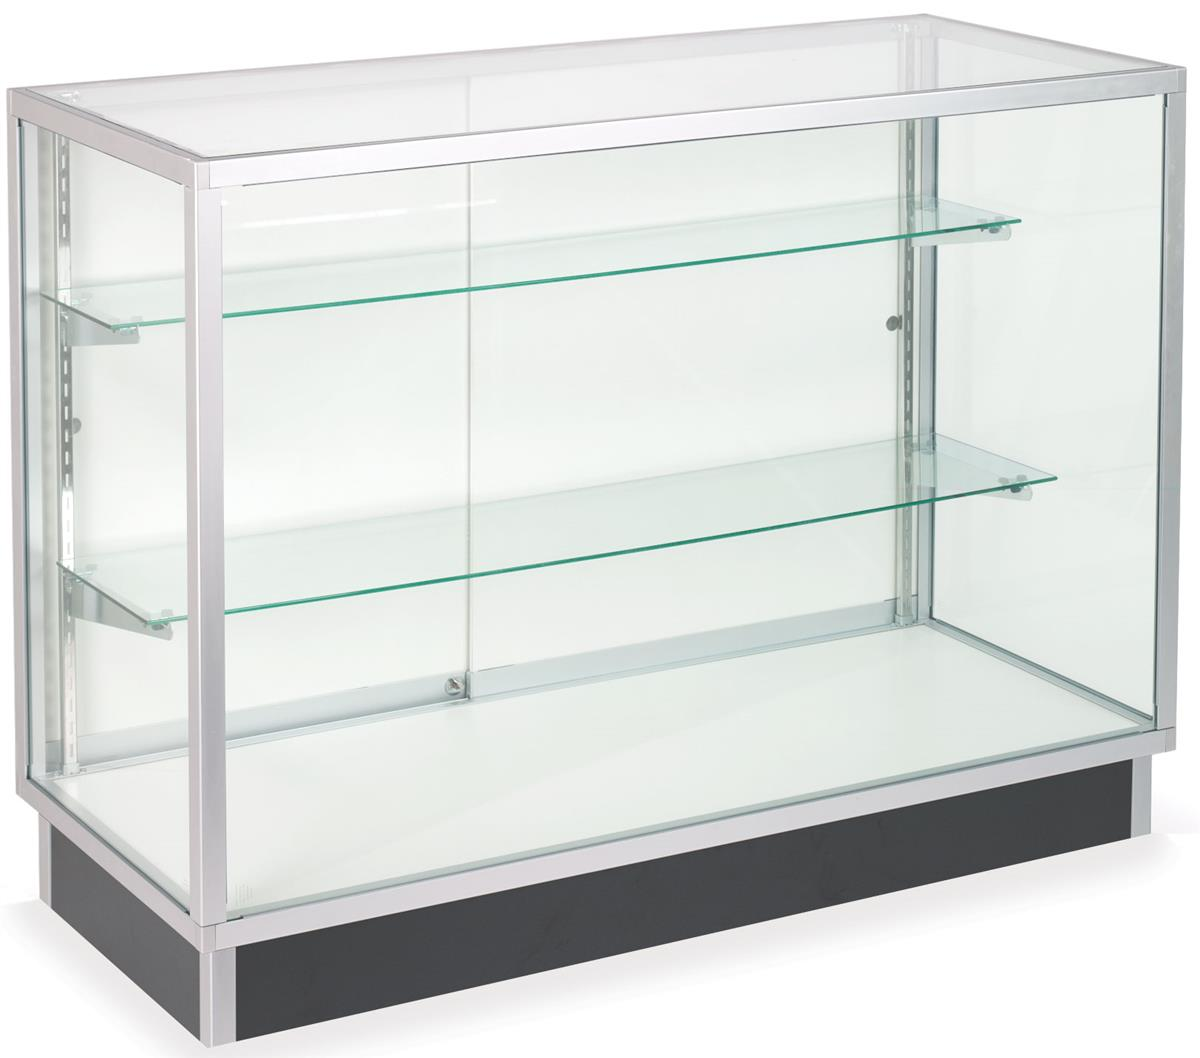 Glass Vitrine Glass Laminate Door Cabinets Four Foot Wide Display Cases